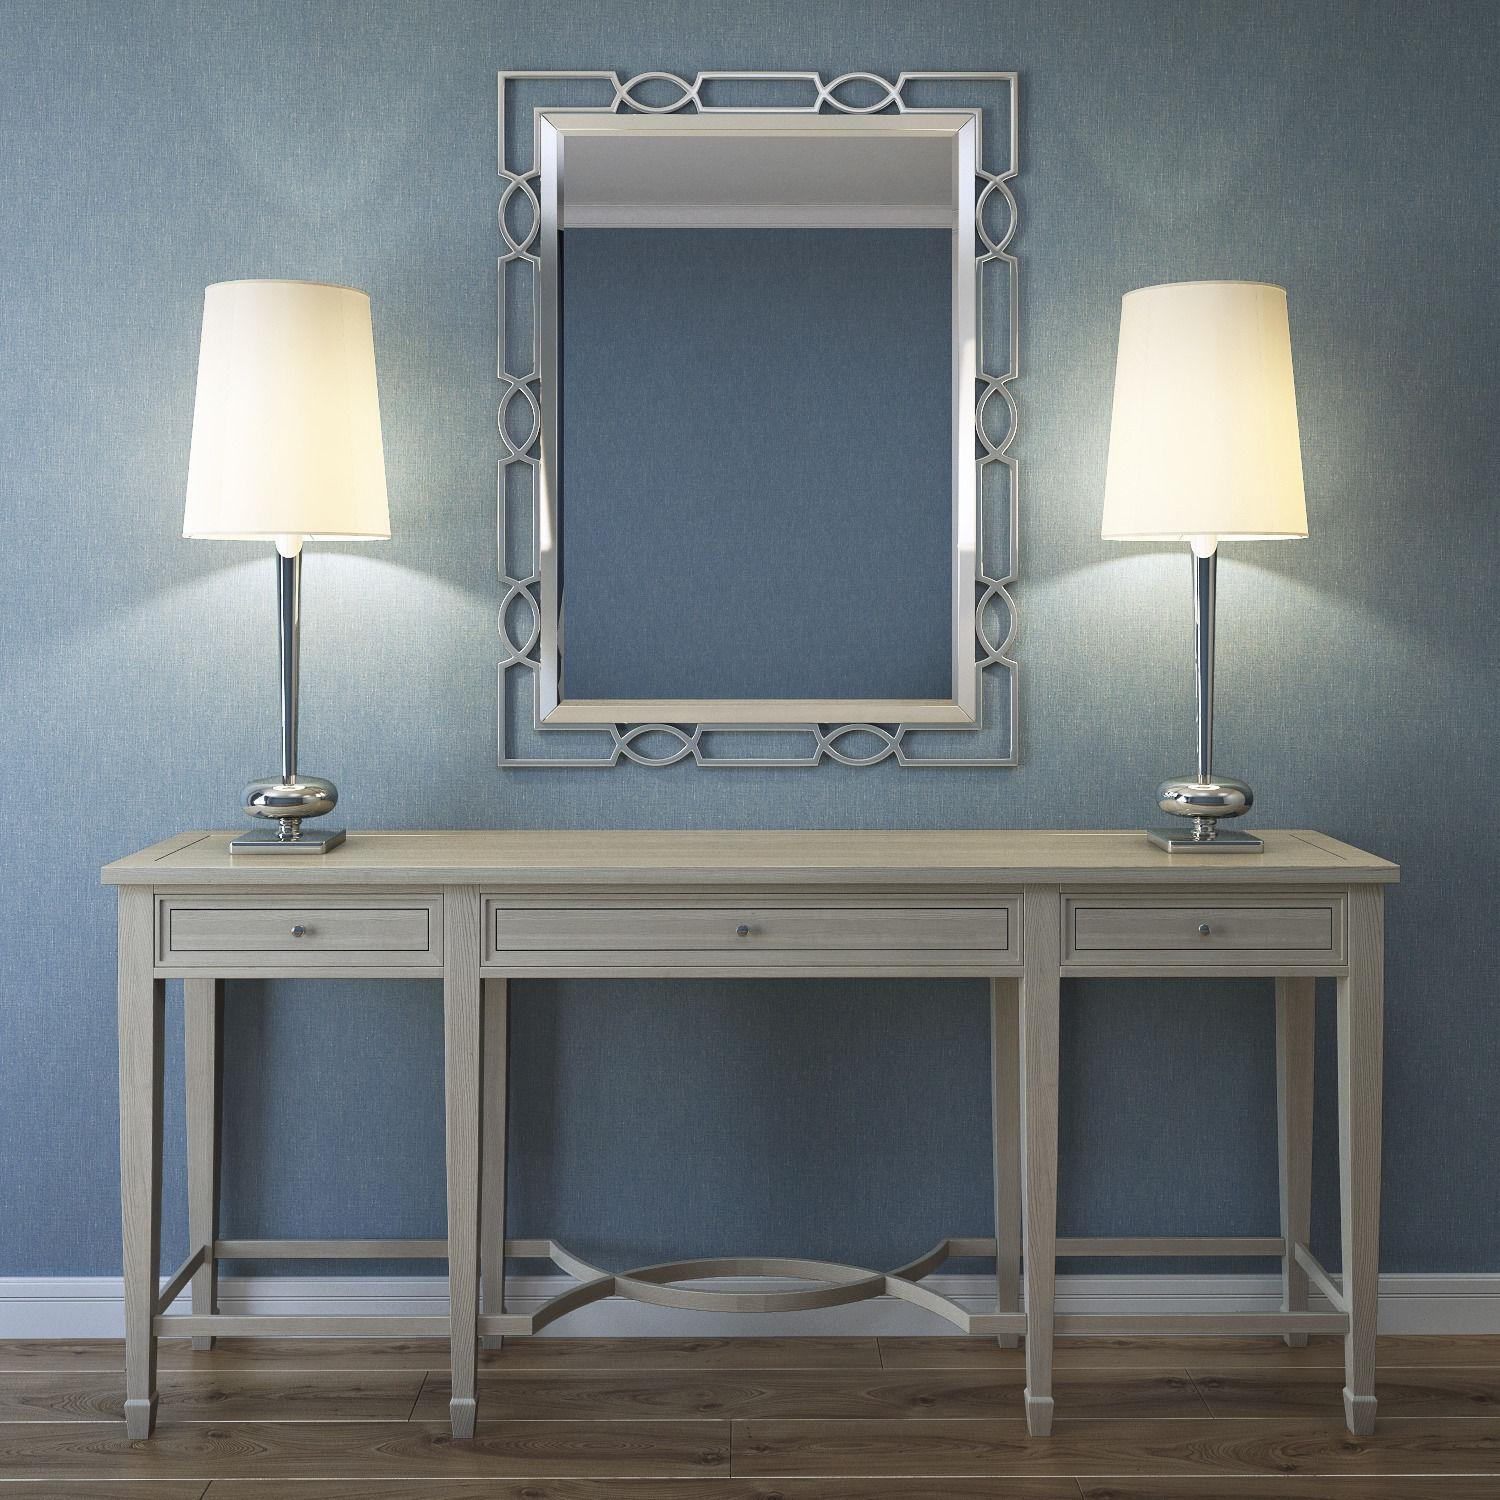 Bernhardt Criteria Console Table With The Mirror 3D Model Max Fbx With Regard To Bernhardt Console Tables (View 6 of 20)